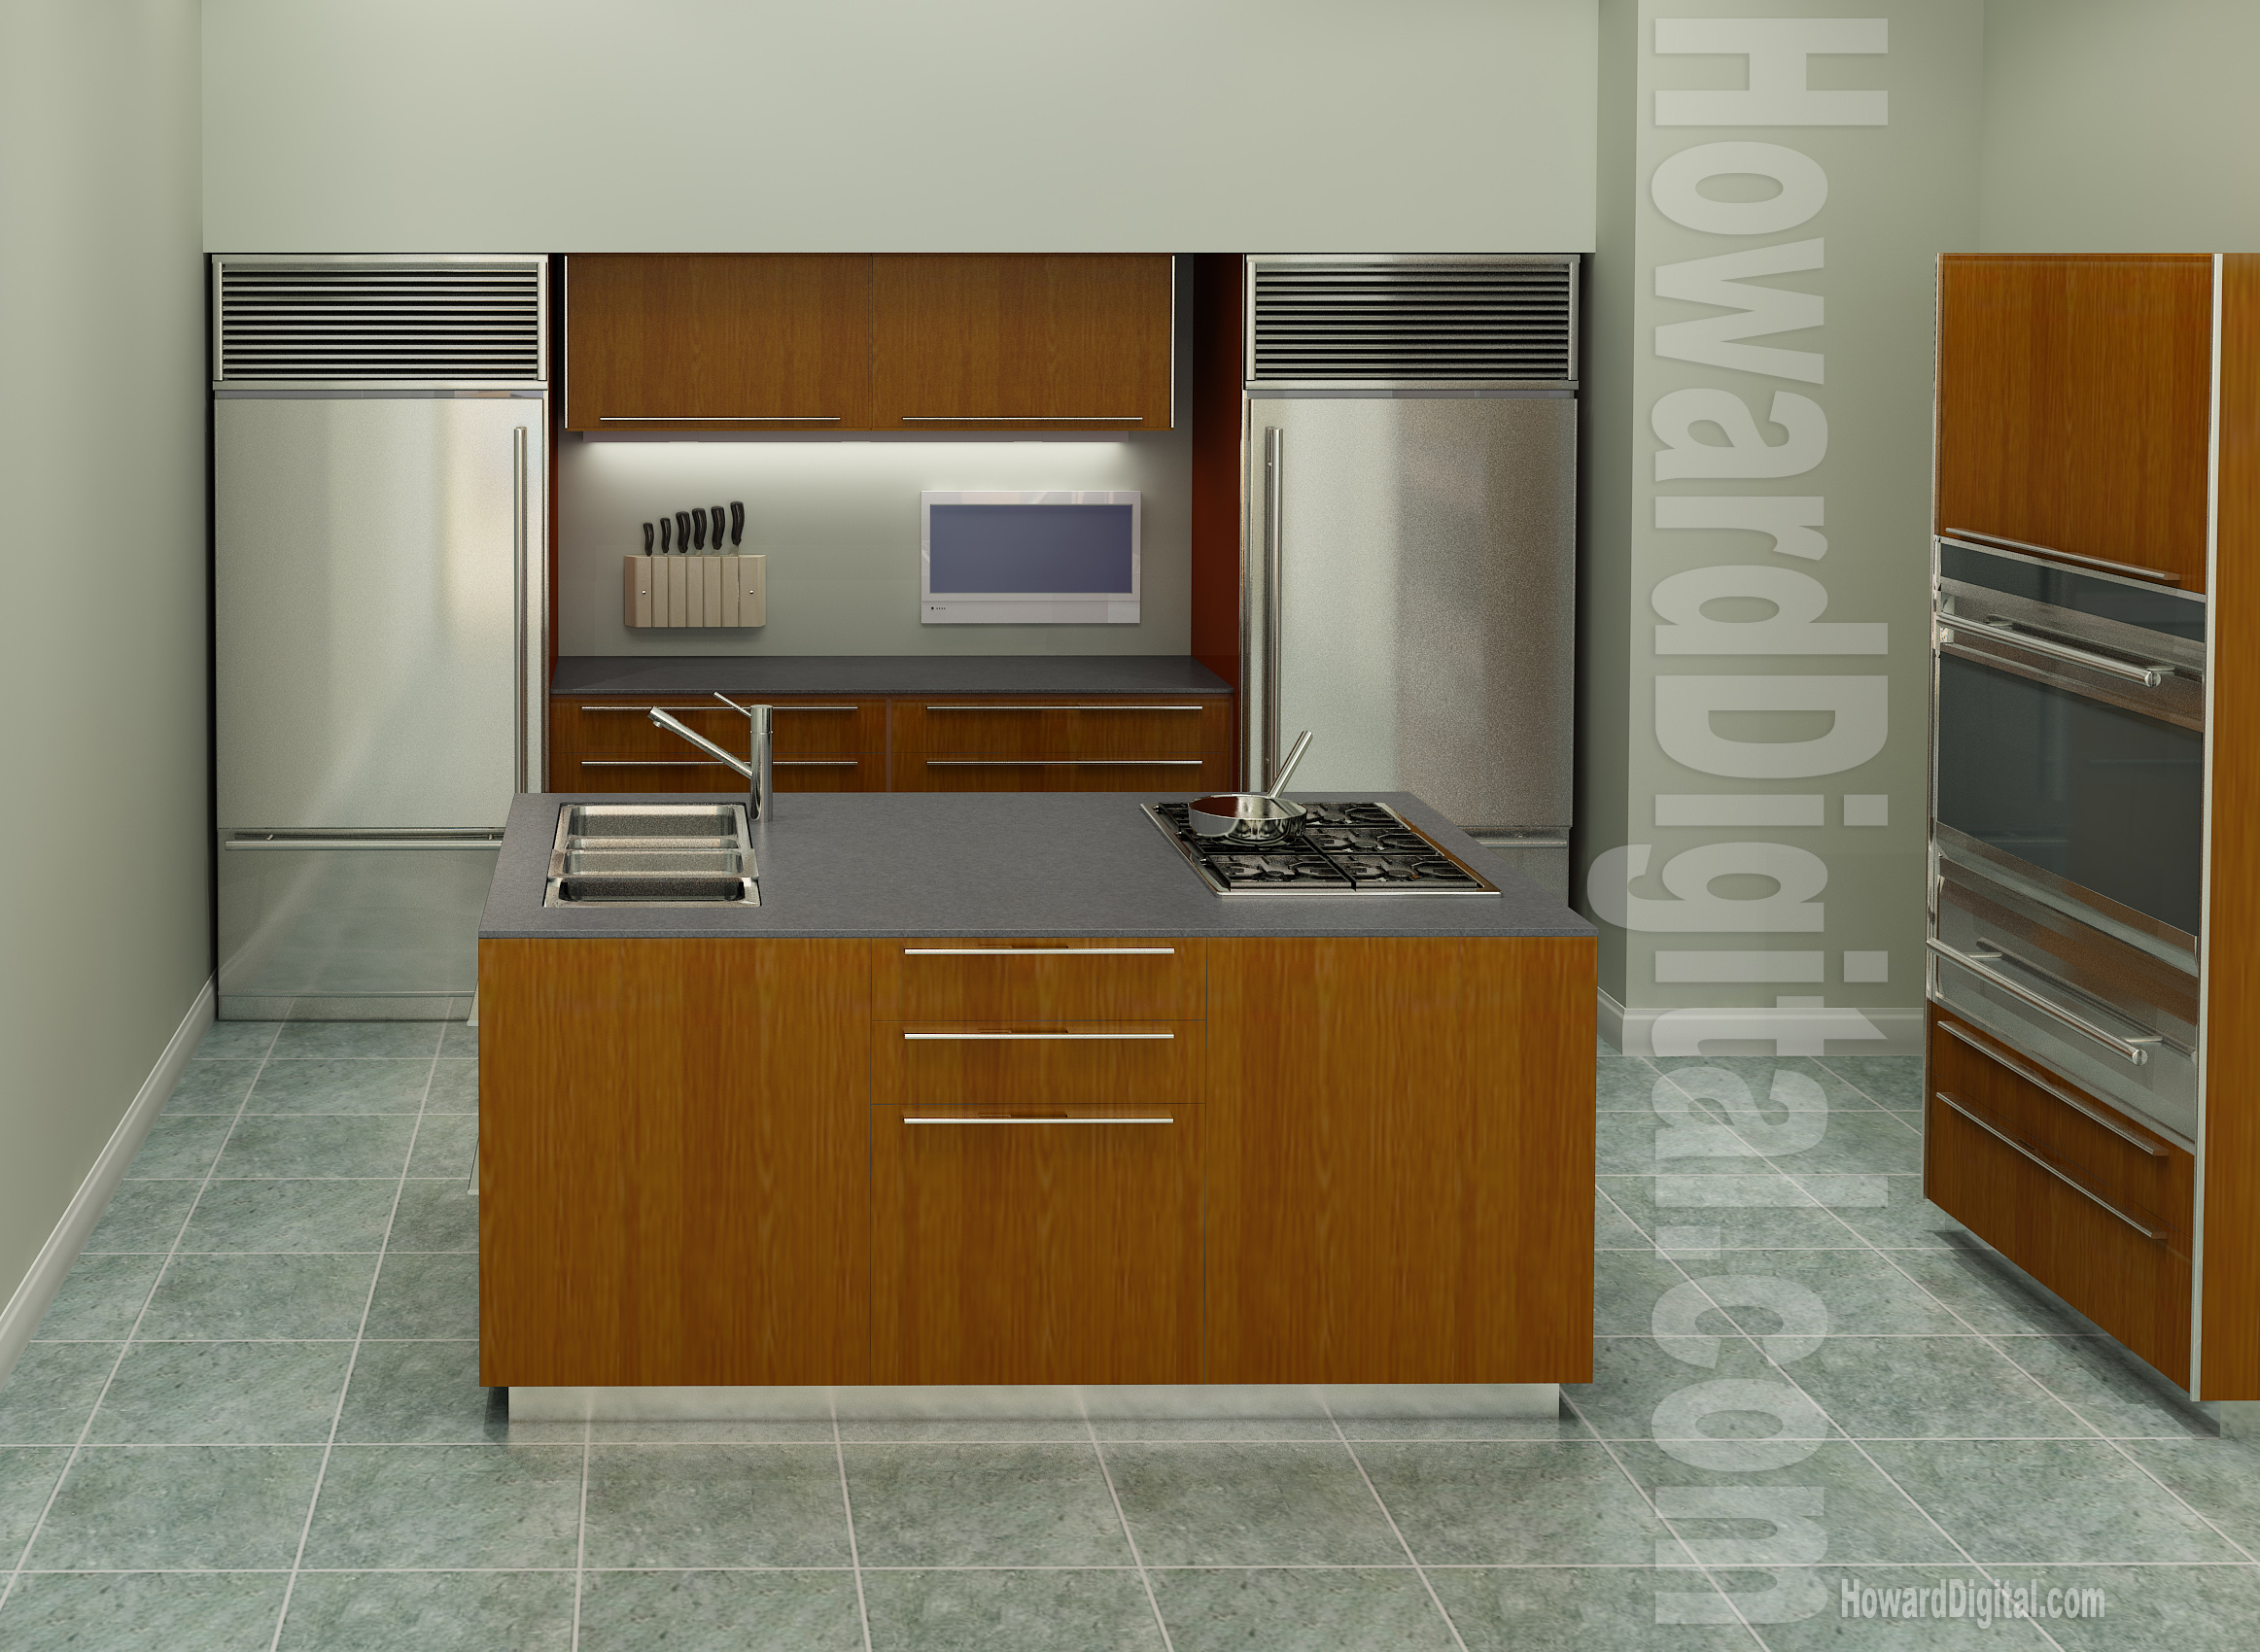 Kitchen interior howard digital - Interior design for kitchen ...